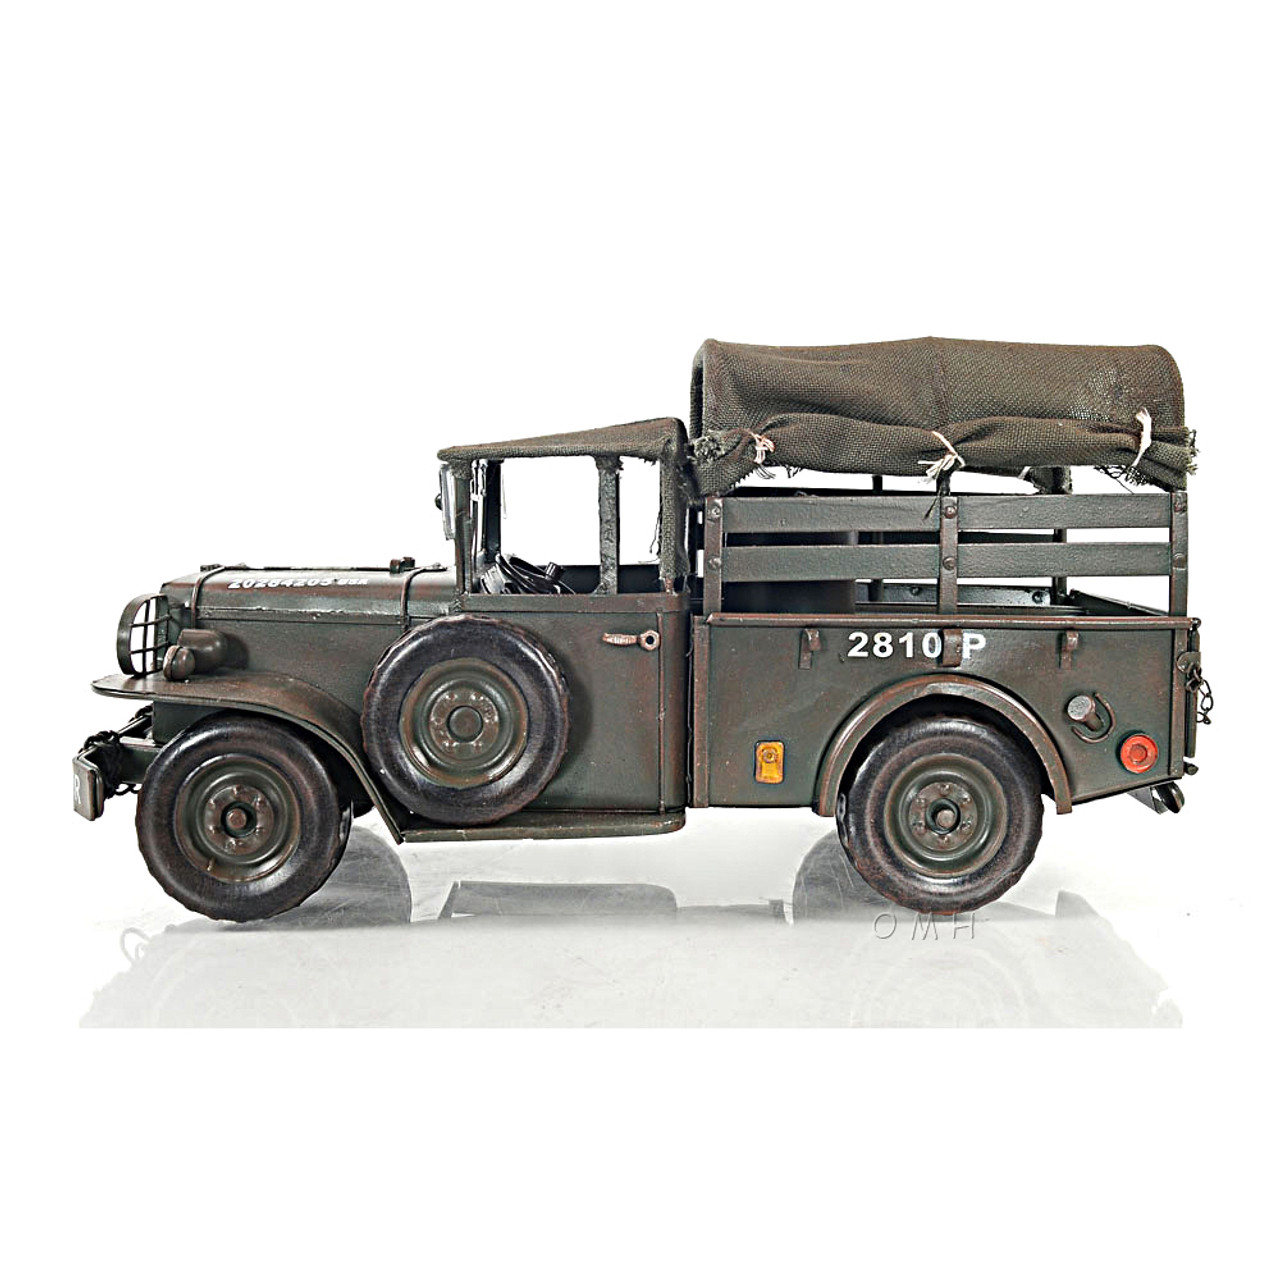 "Dodge M37 Military Command Truck Metal Model 13/"" US Army 1950/'s Korean War Decor"